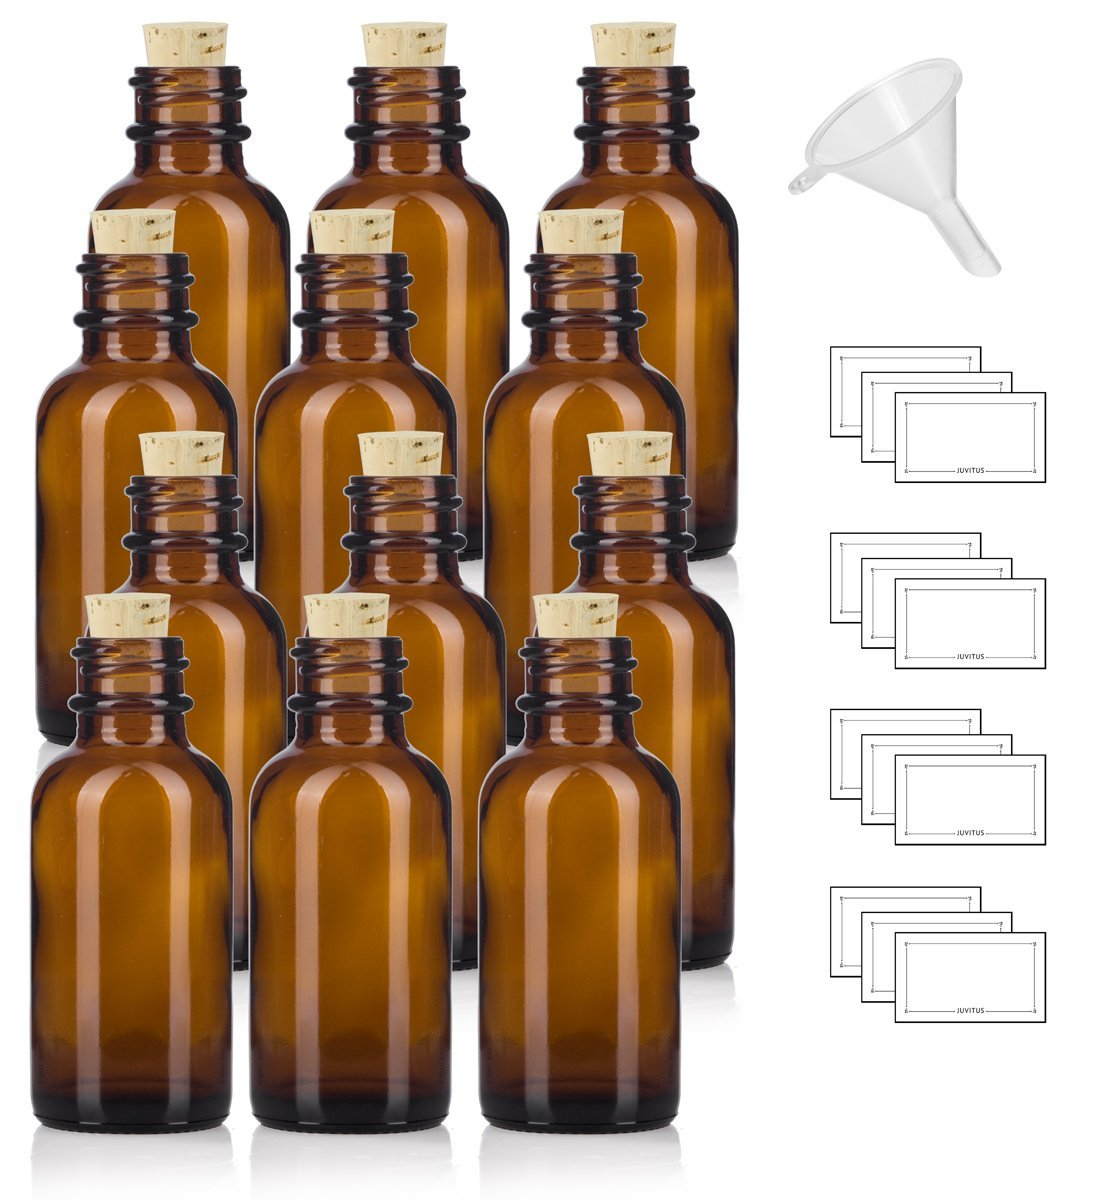 1 oz Amber Glass Boston Round Bottle with Cork Stopper Closure (12 Pack) + Funnel and Labels